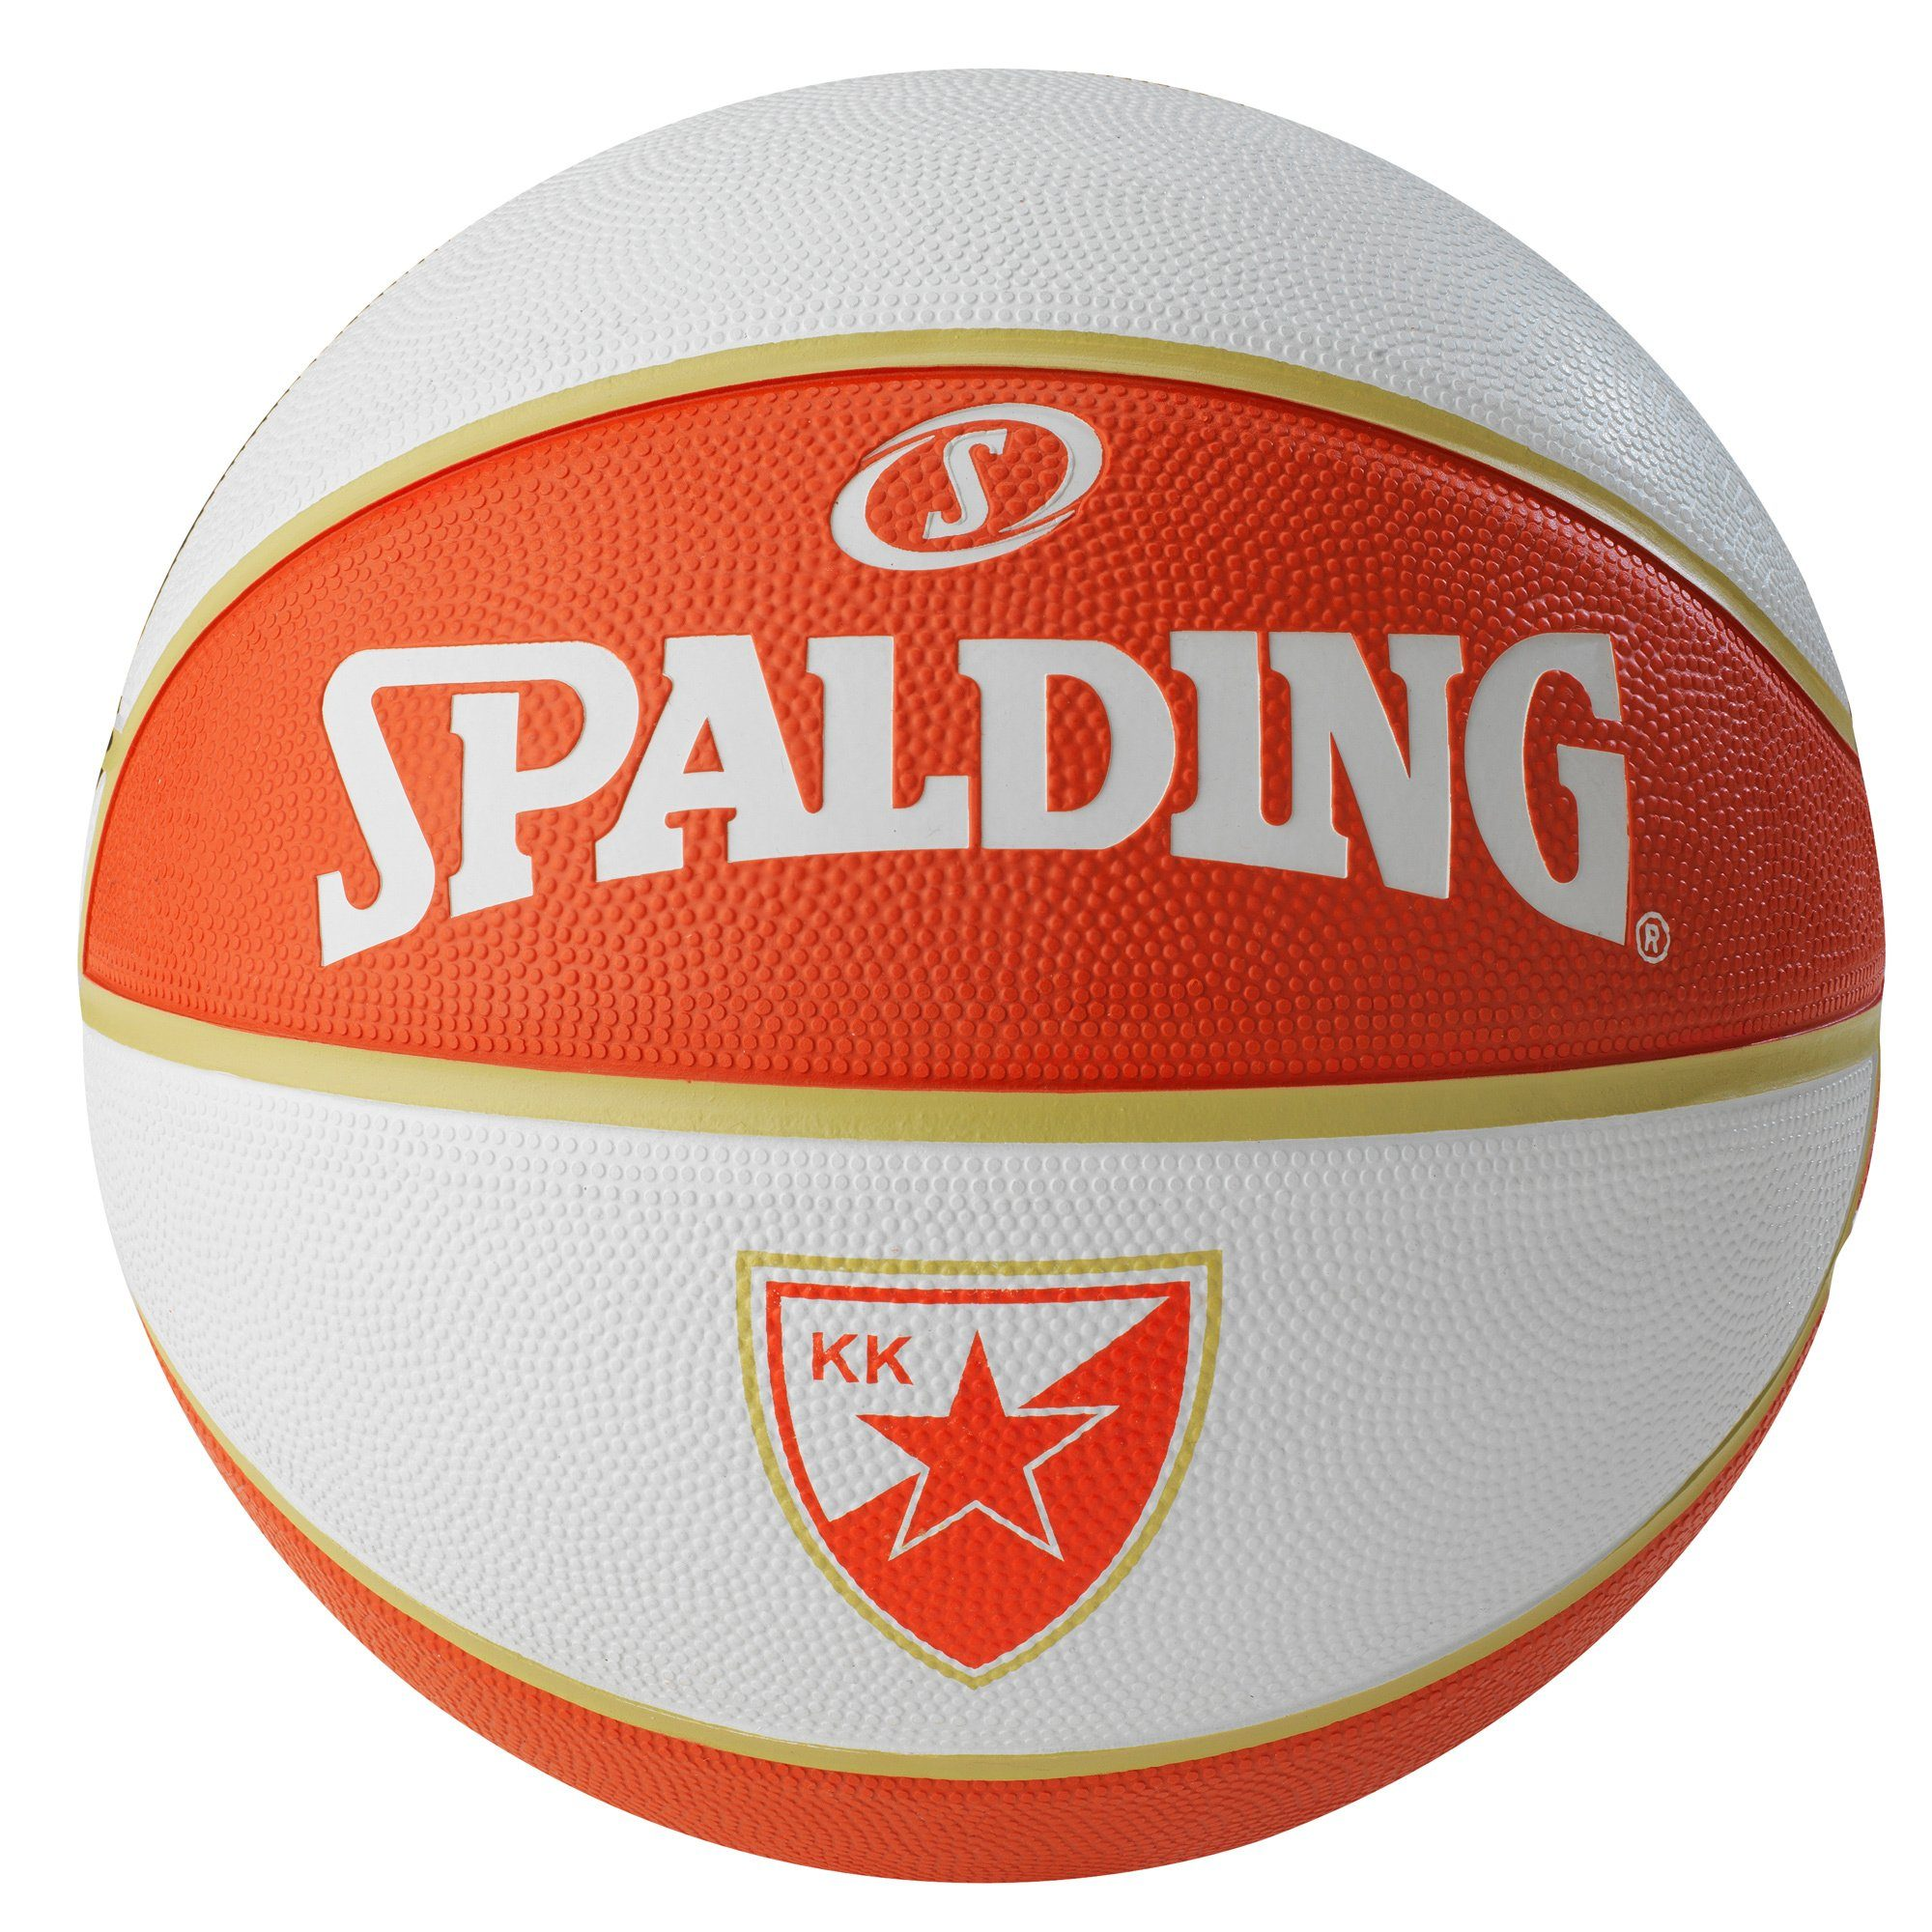 SPALDING EL Team Belgrad Basketball